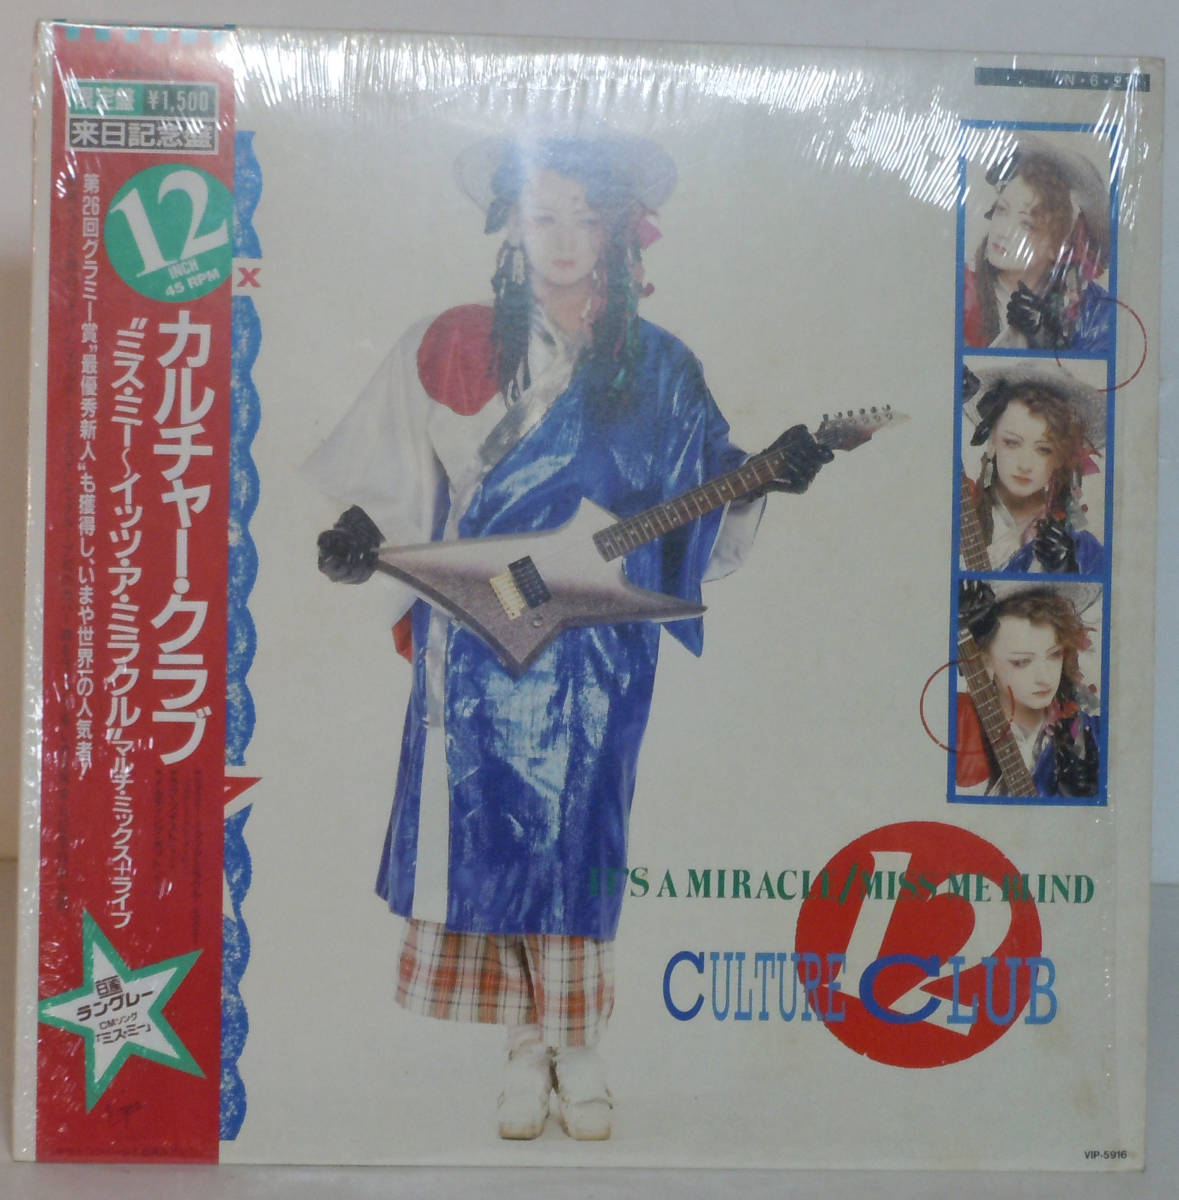 91205S 限定盤 帯付12LP★カルチャー・クラブ/CULTURE CLUB/It's a miracle/Miss me blind/Love twist/Melting pot★VIP-5916 _画像1